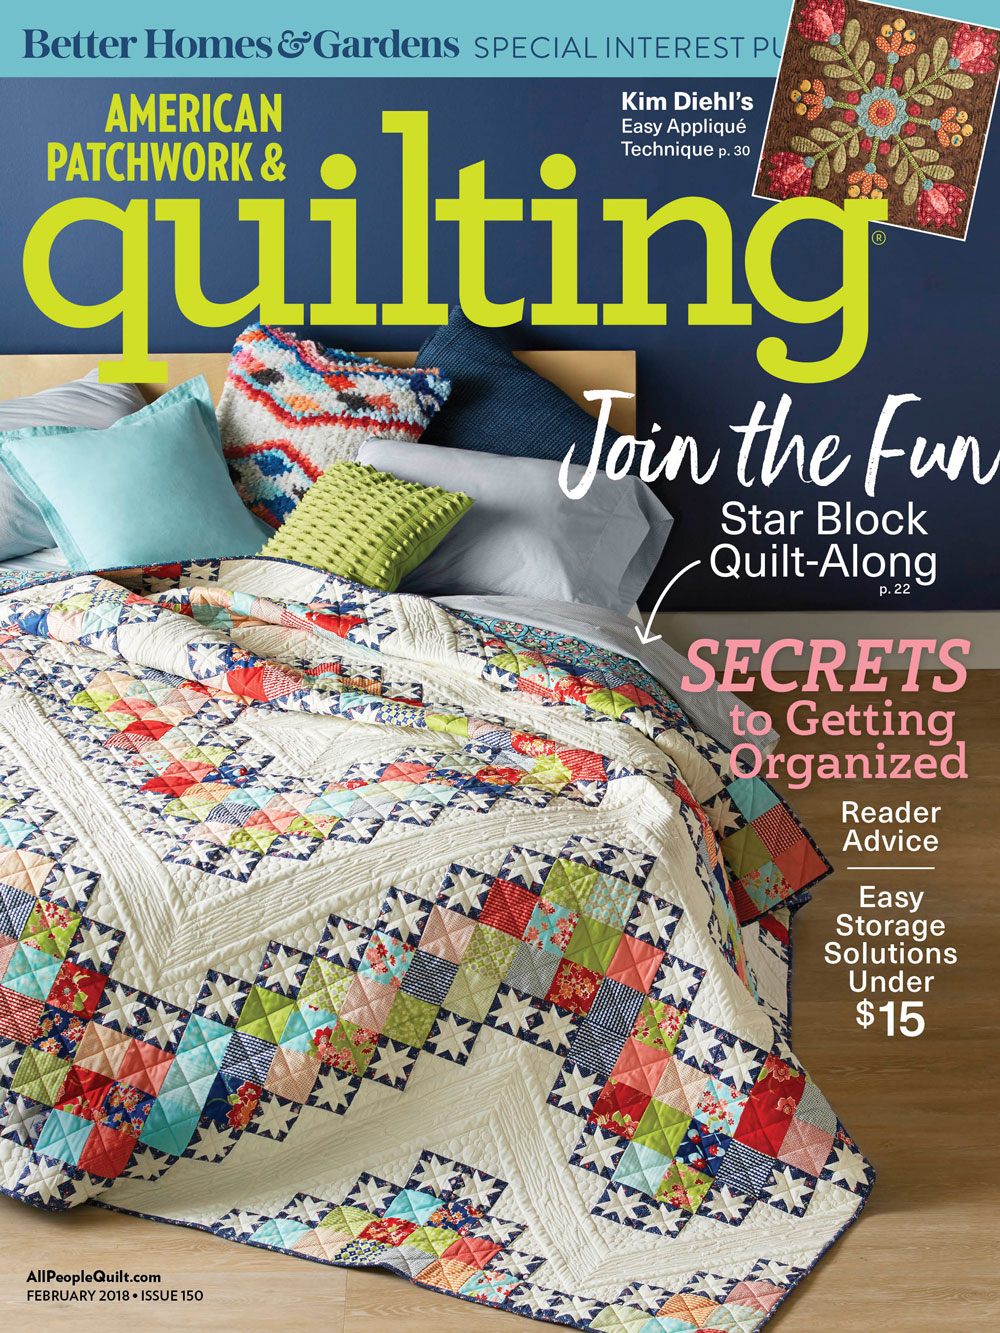 American Patchwork & Quilting February 2018